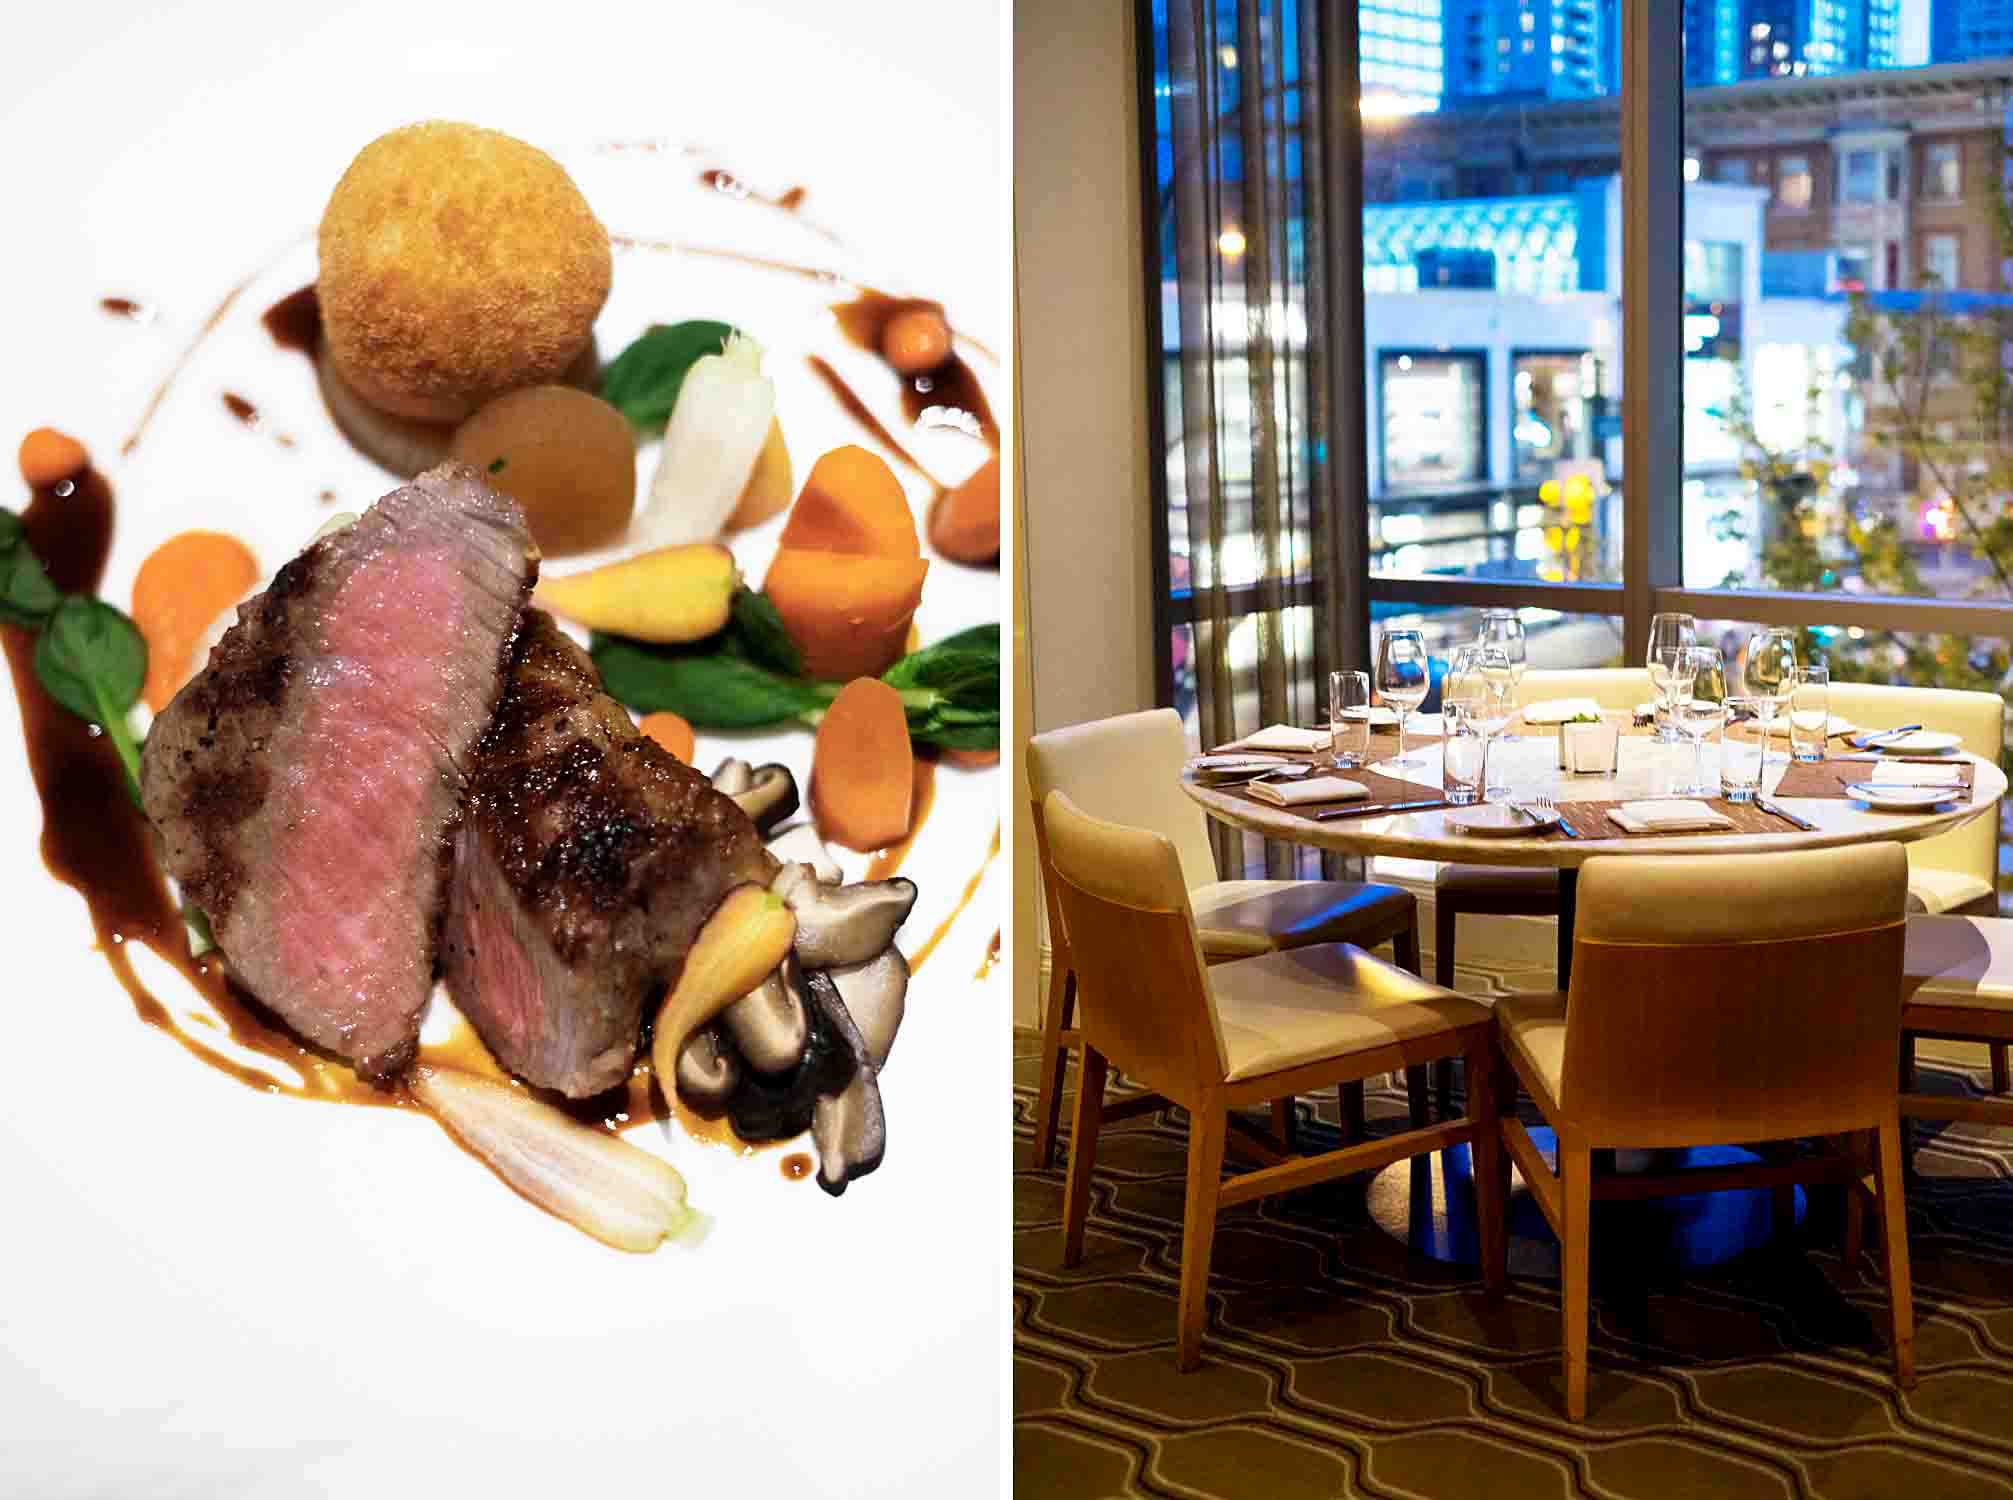 Market by Jean-Georges is the first restaurant in Canada for three-star Michelin chef Jean-Georges Vongerichten.It's located on the third floor of the Shangri-La hotel Vancouver